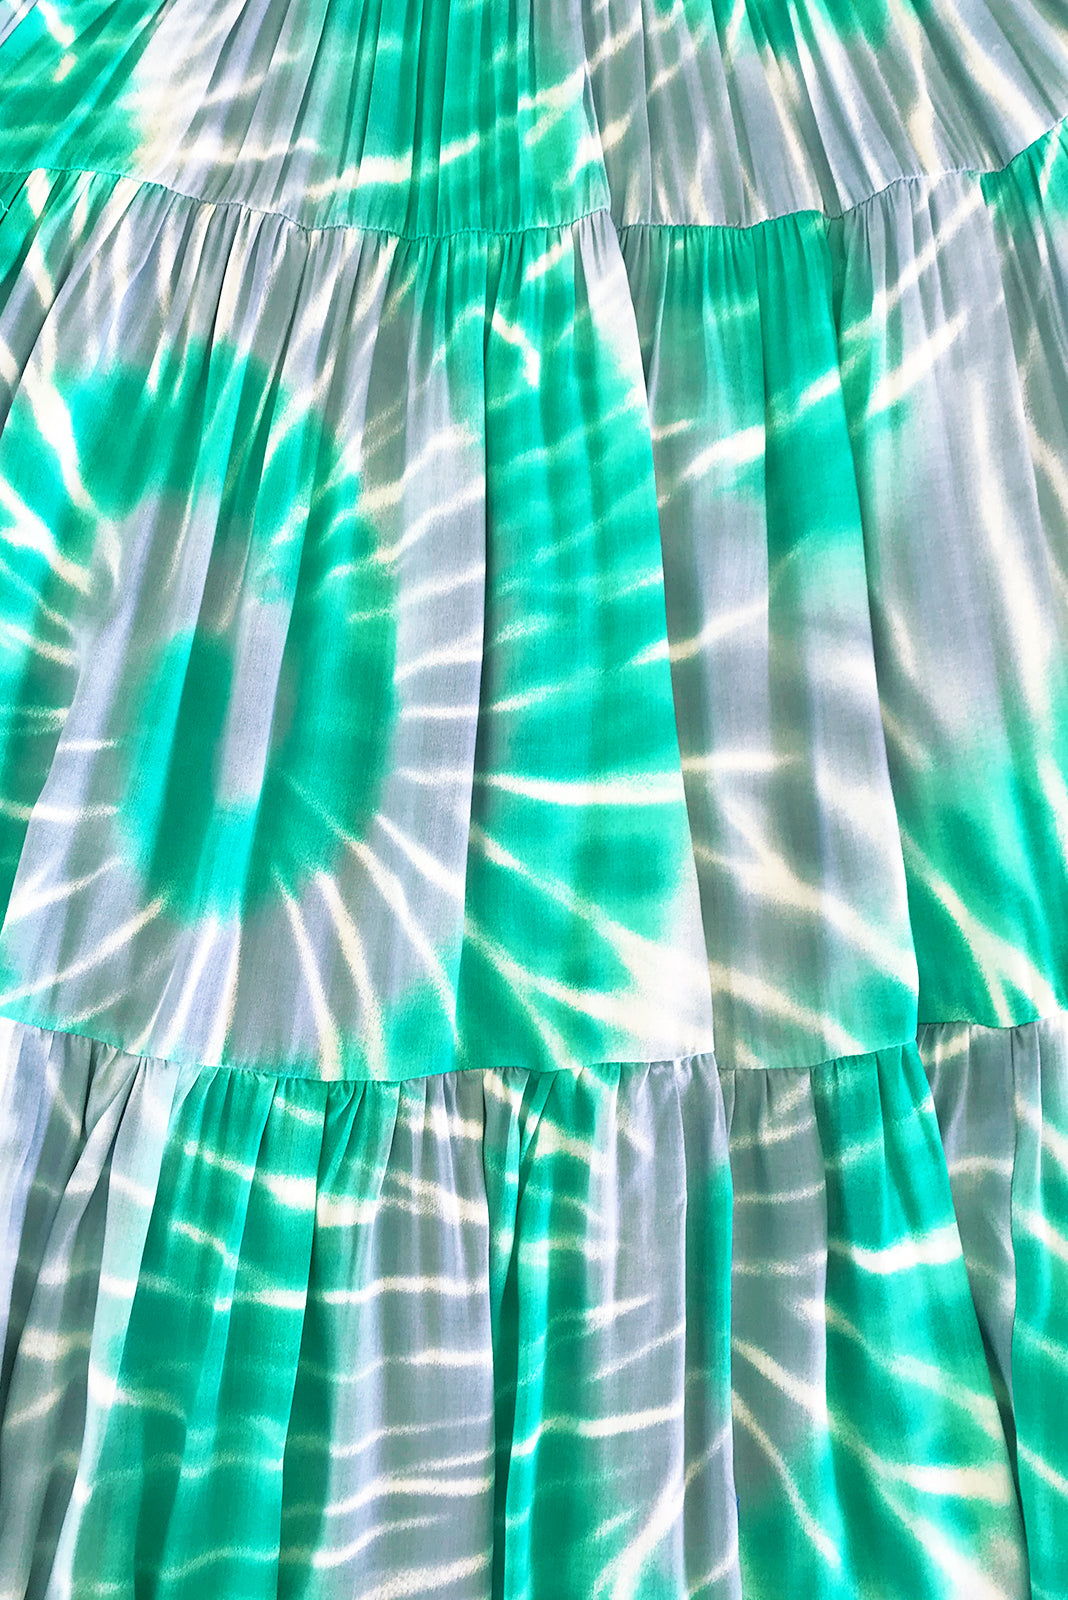 Fabric Swatch of Lulu Darling Aqua Ripples Maxi Dress featuring 100% rayon in silvery grey and lagoon green ripple print.